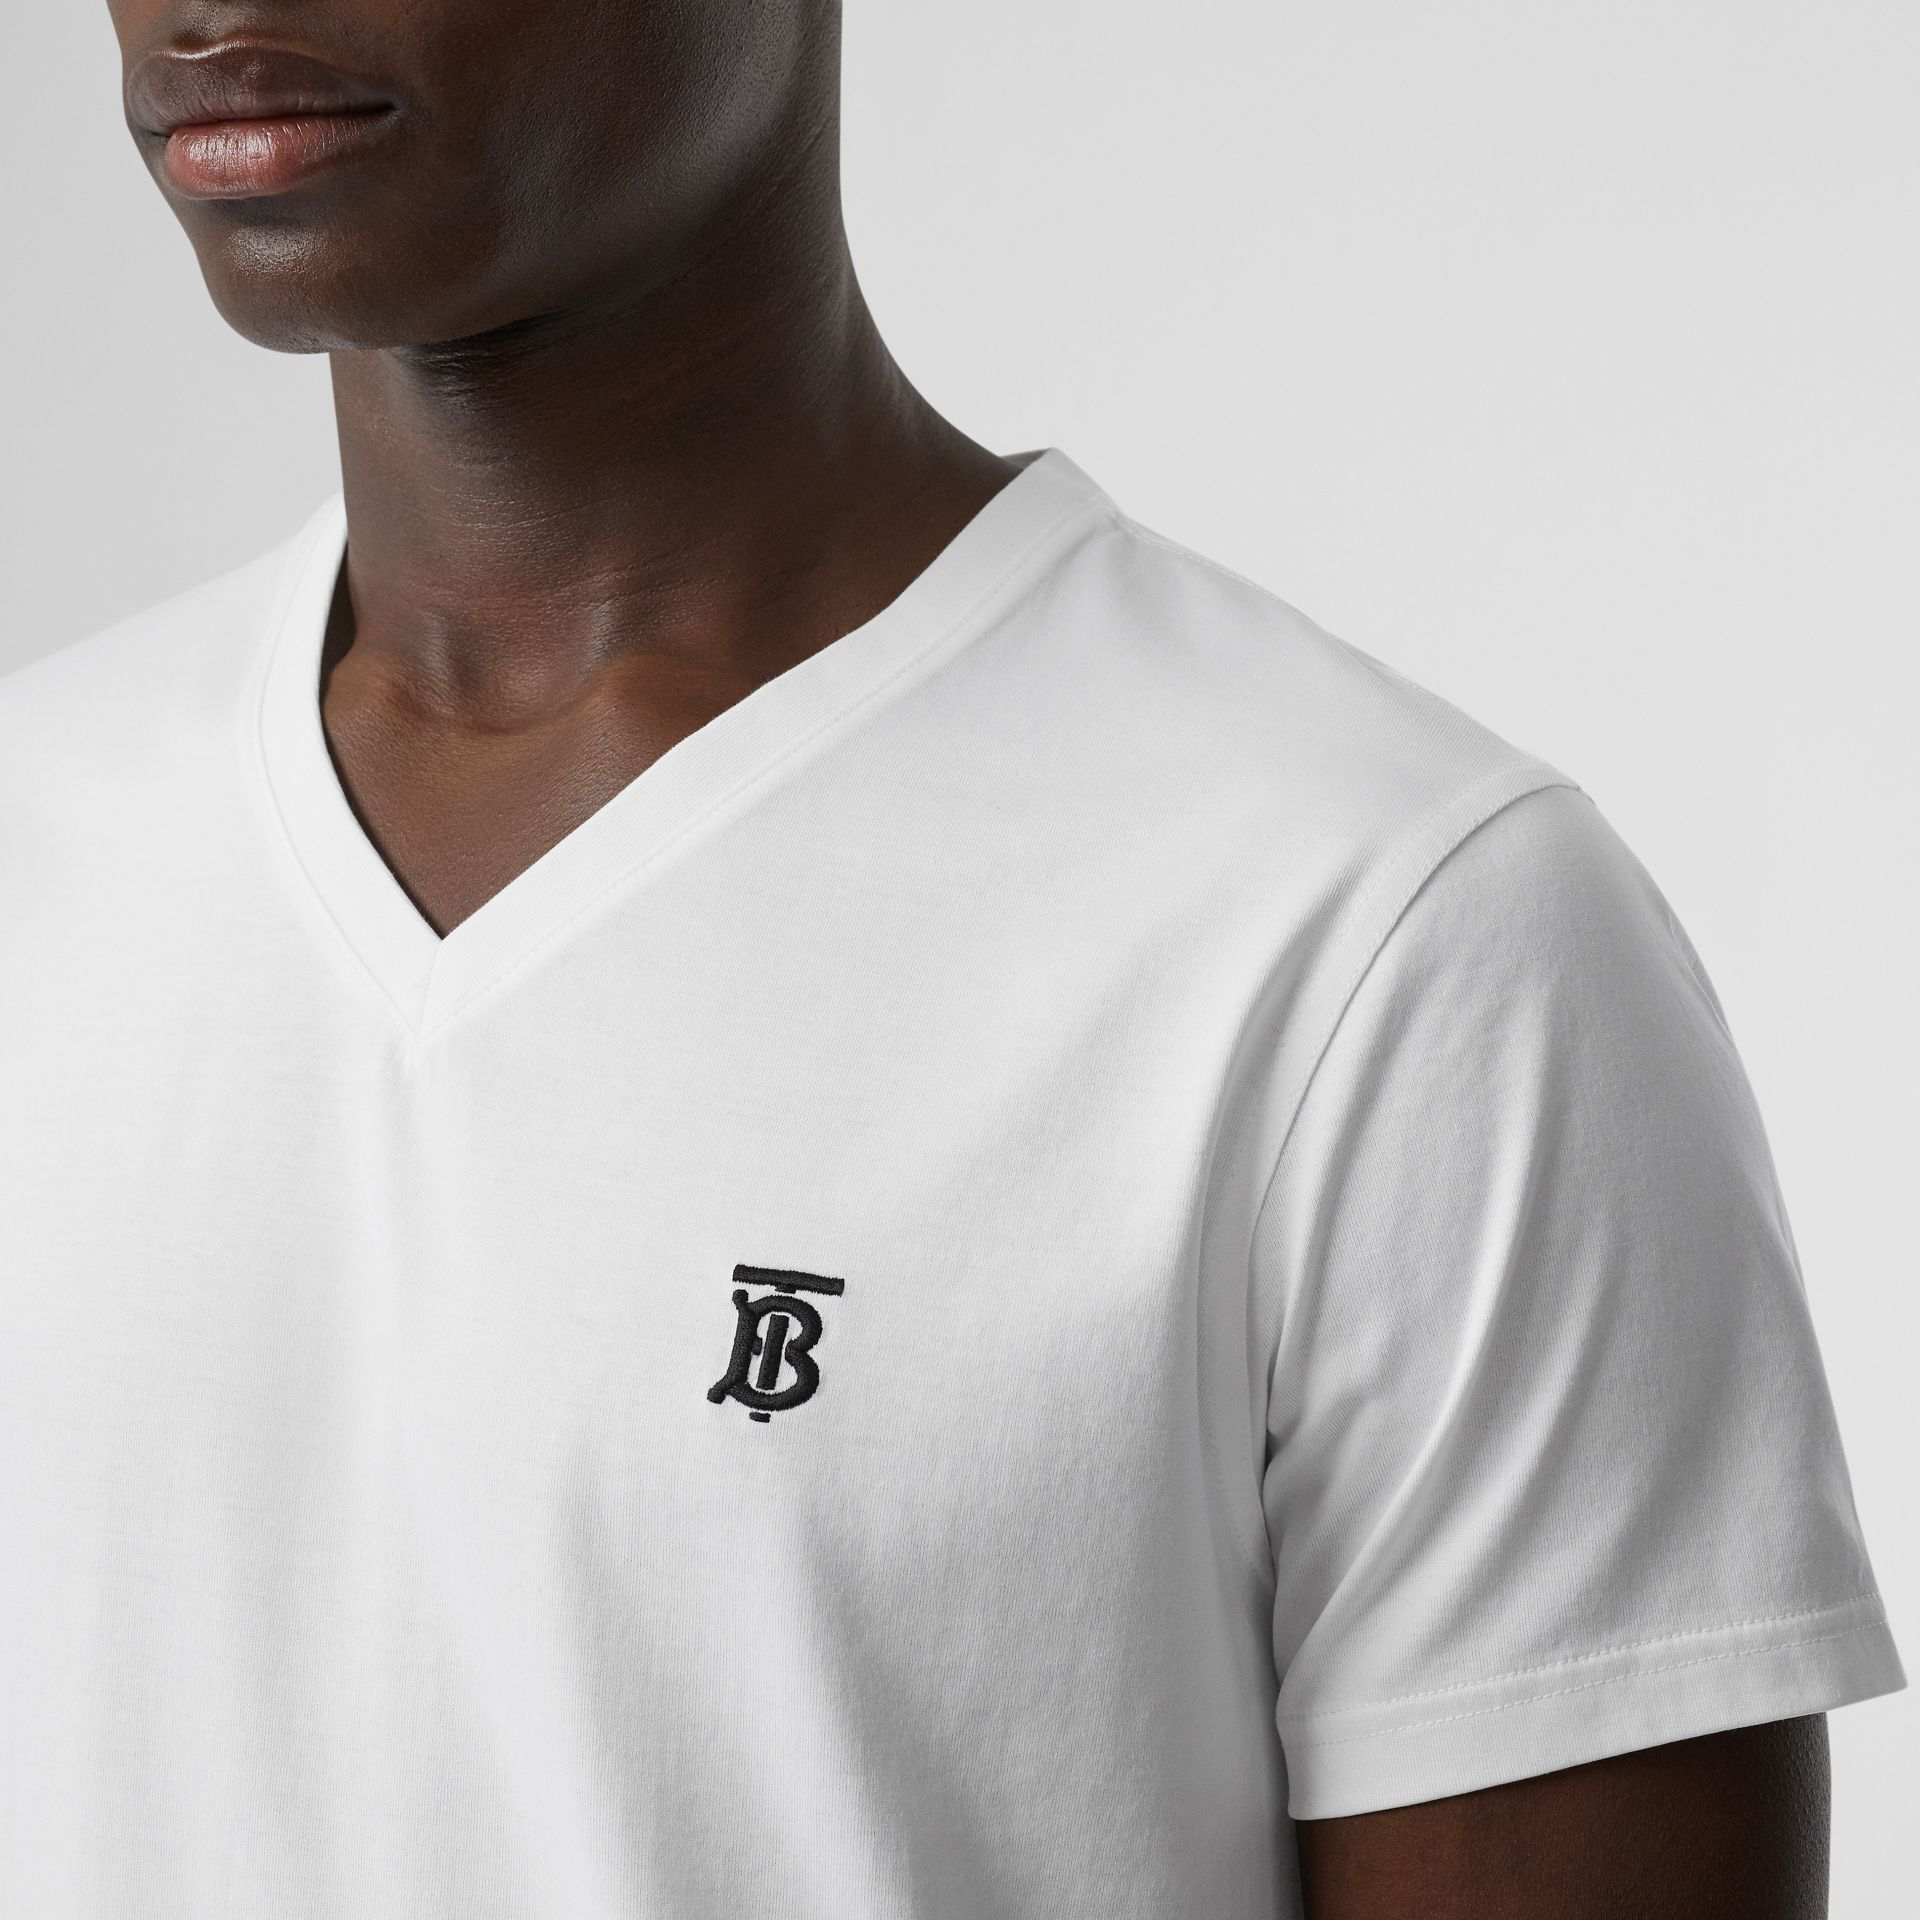 Monogram Motif Cotton V-neck T-shirt in White - Men | Burberry - gallery image 1